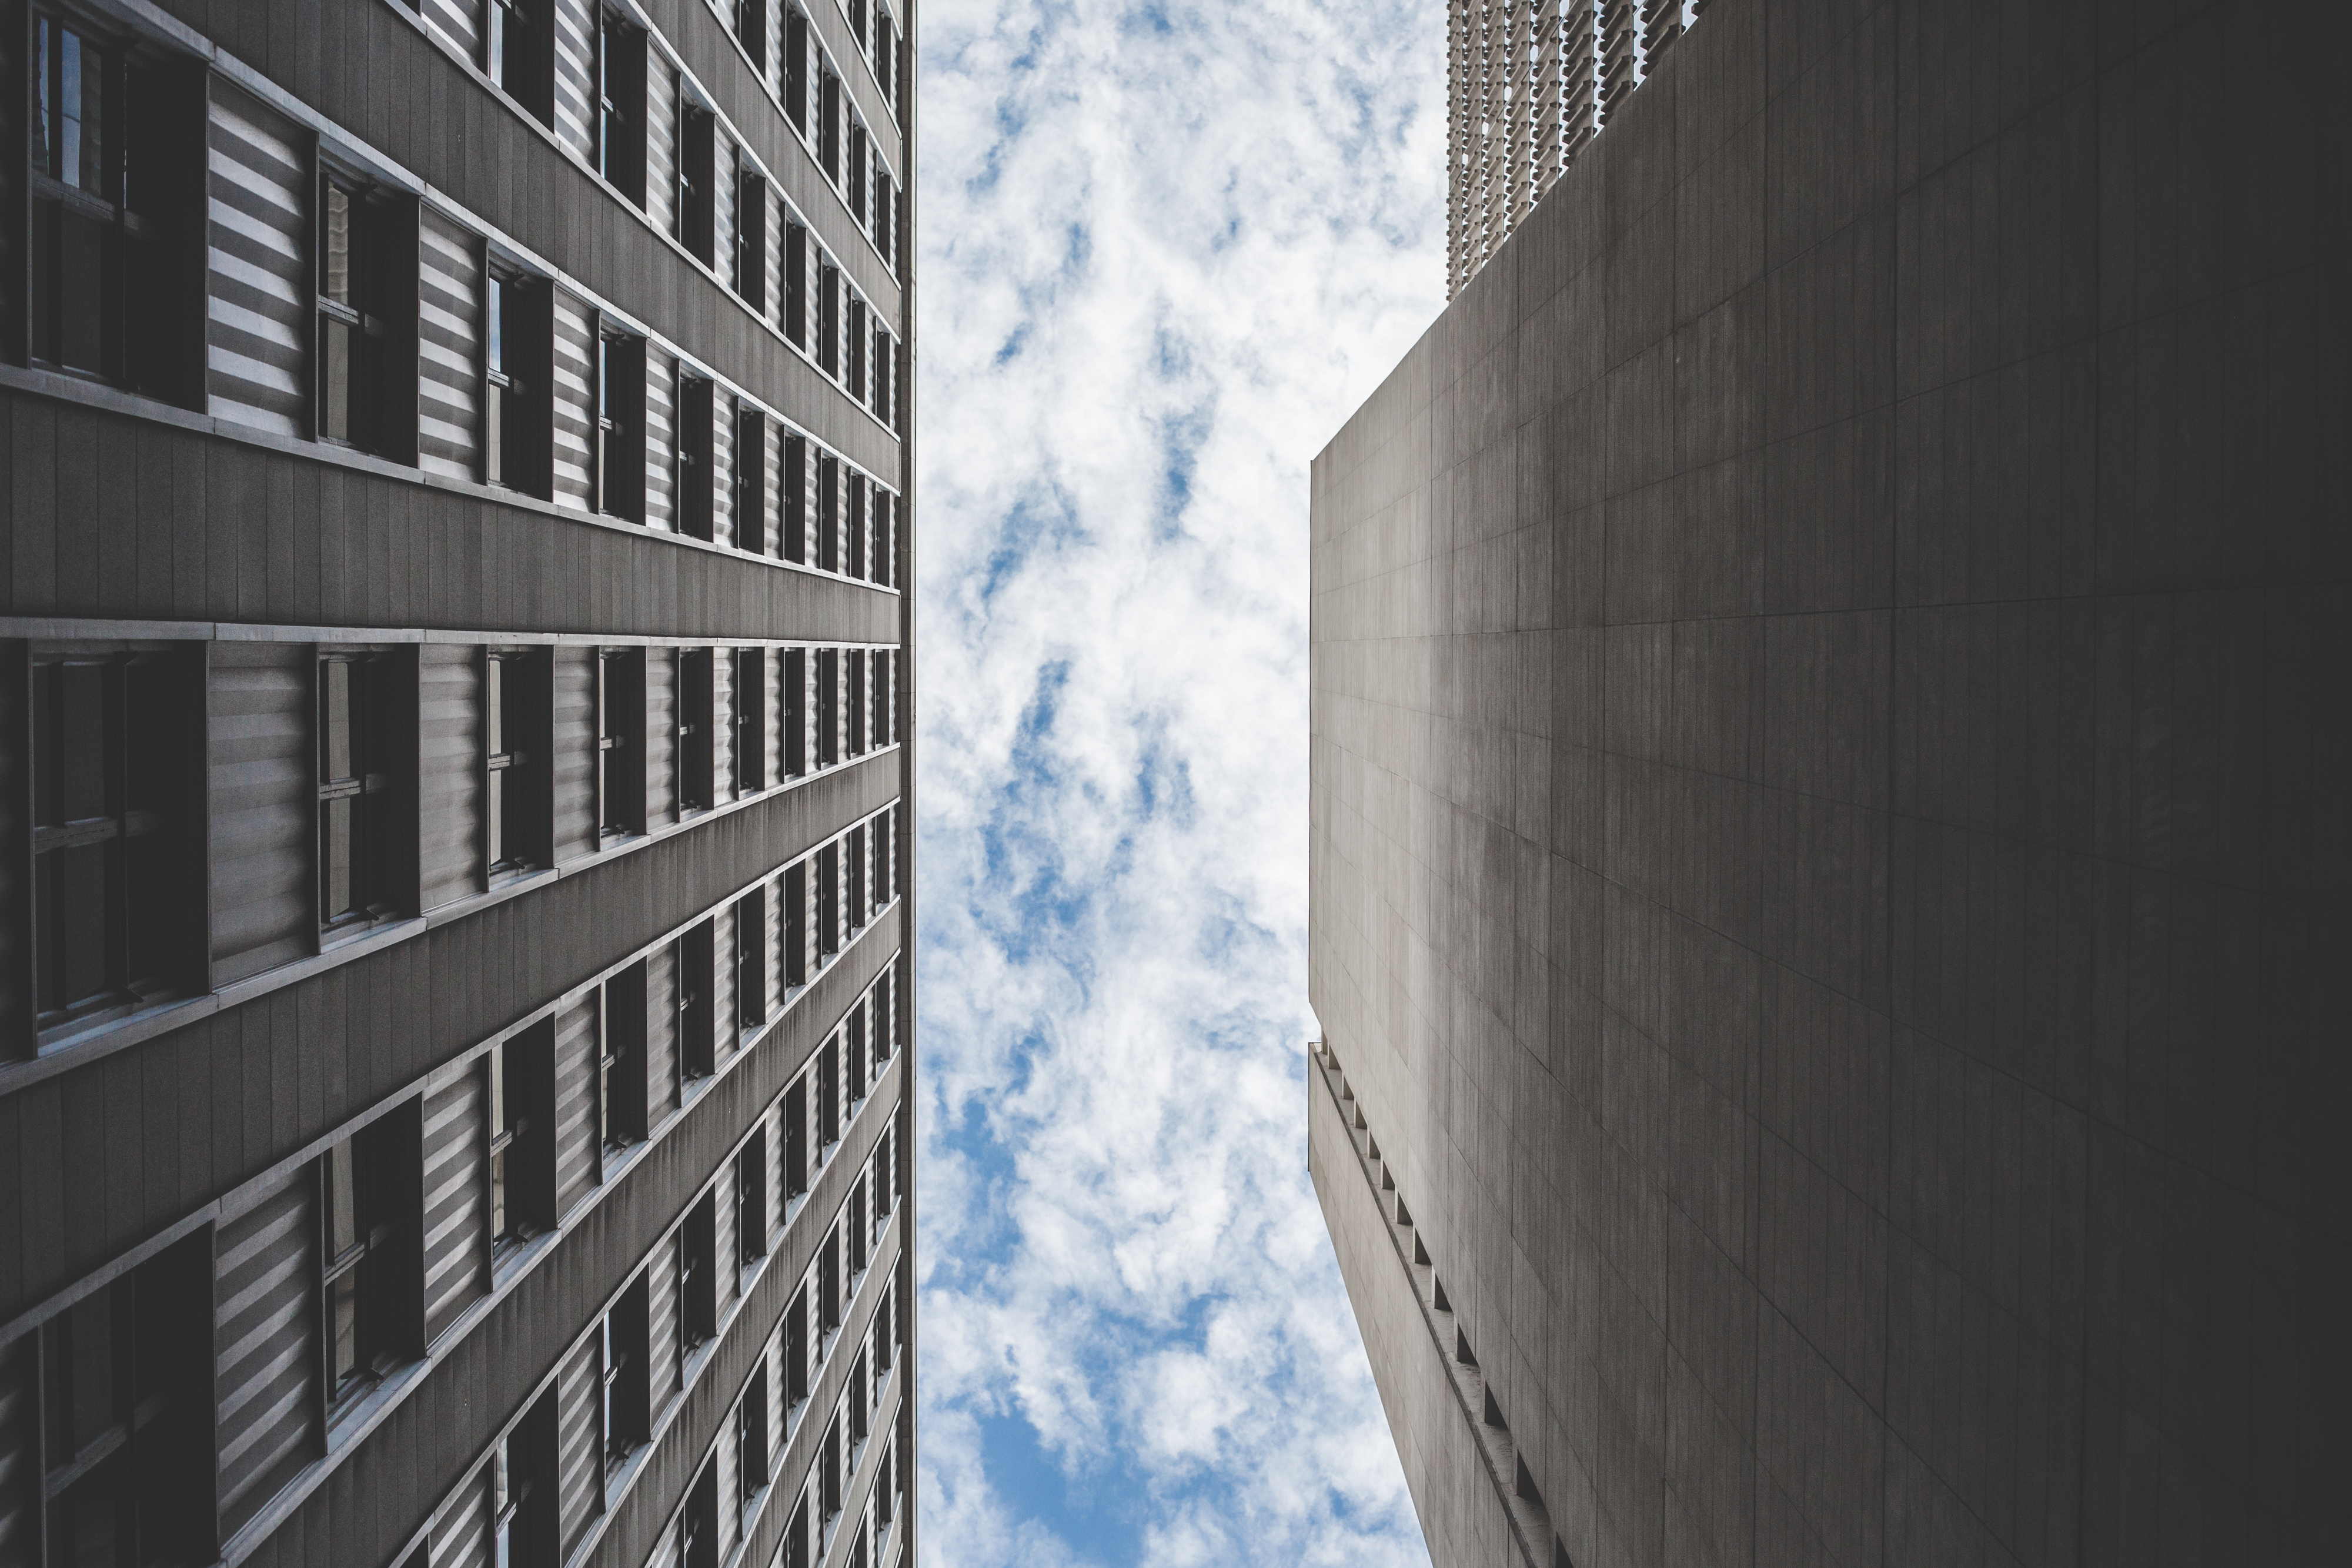 cloudy-sky-between-two-skyscrapers-buildings-picjumbo-com